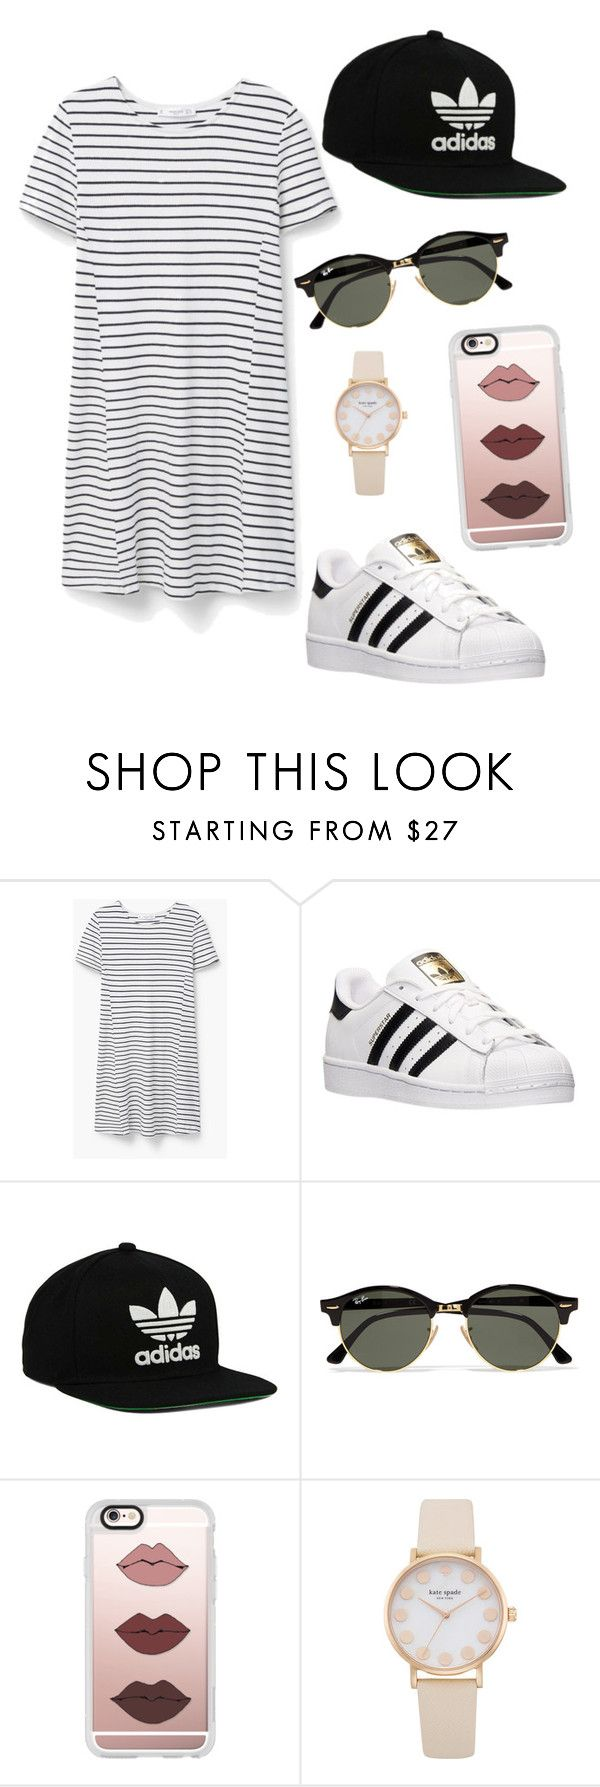 """""""Untitled #2"""" by airyv ❤ liked on Polyvore featuring MANGO, adidas, adidas Originals, Ray-Ban and Casetify"""